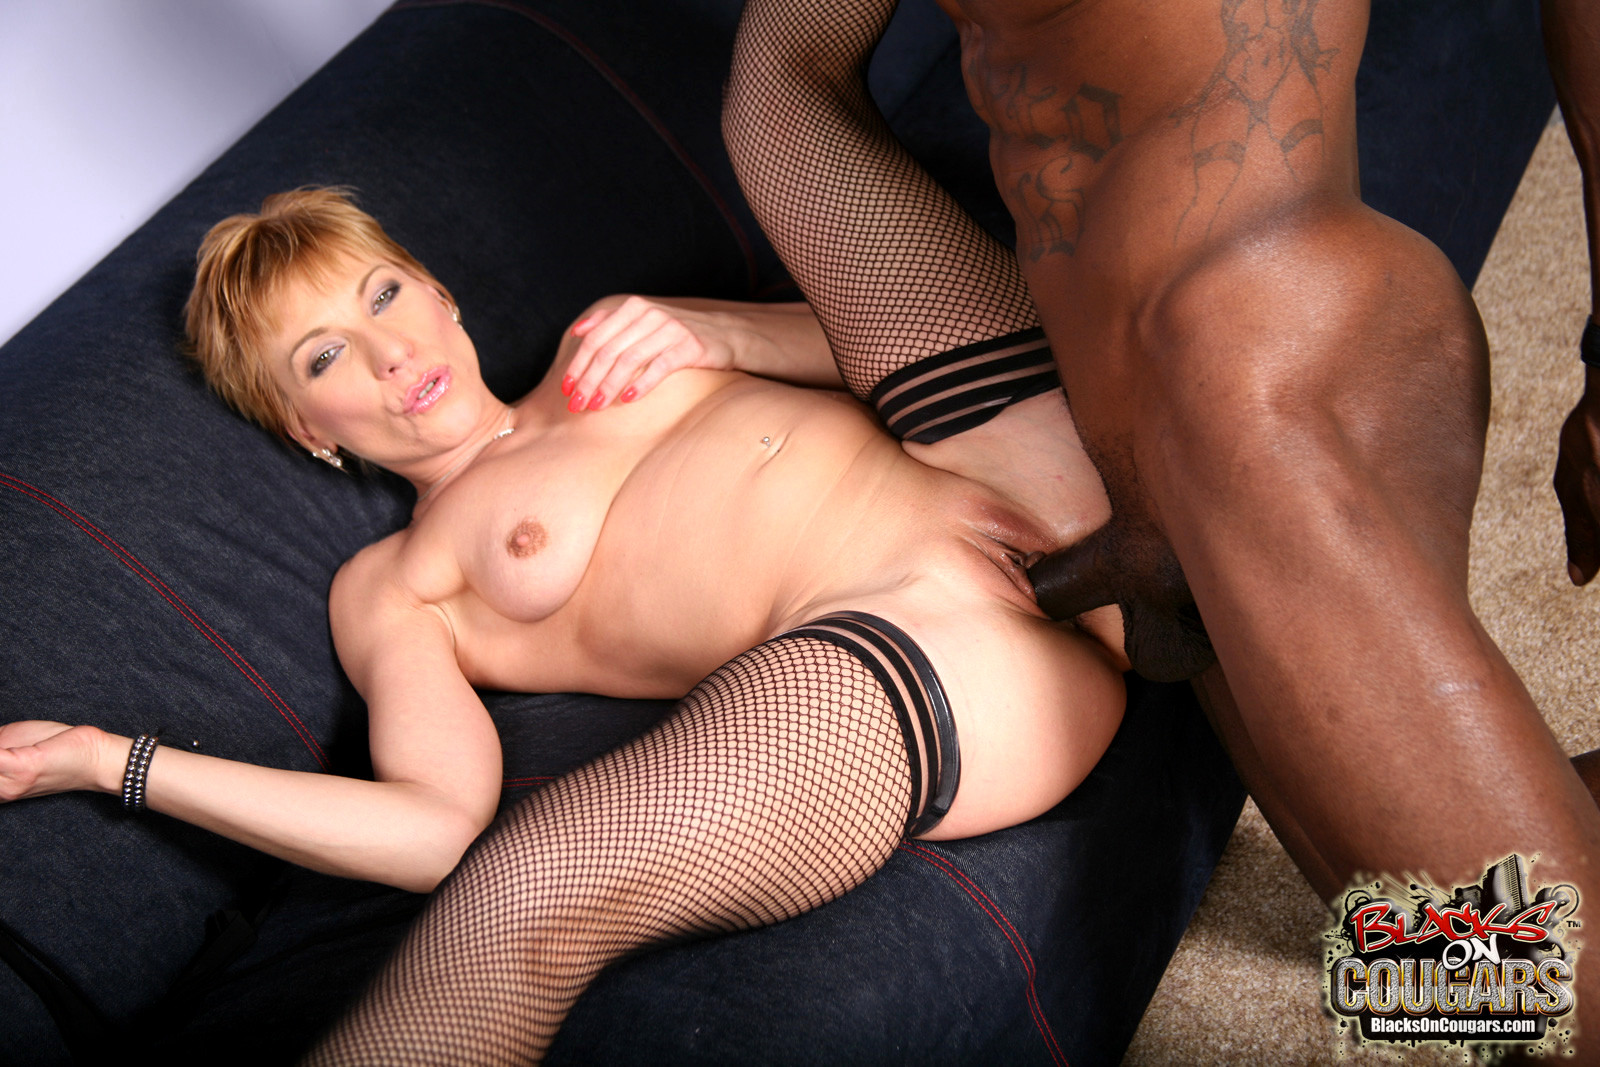 Babe today showing porn swinger